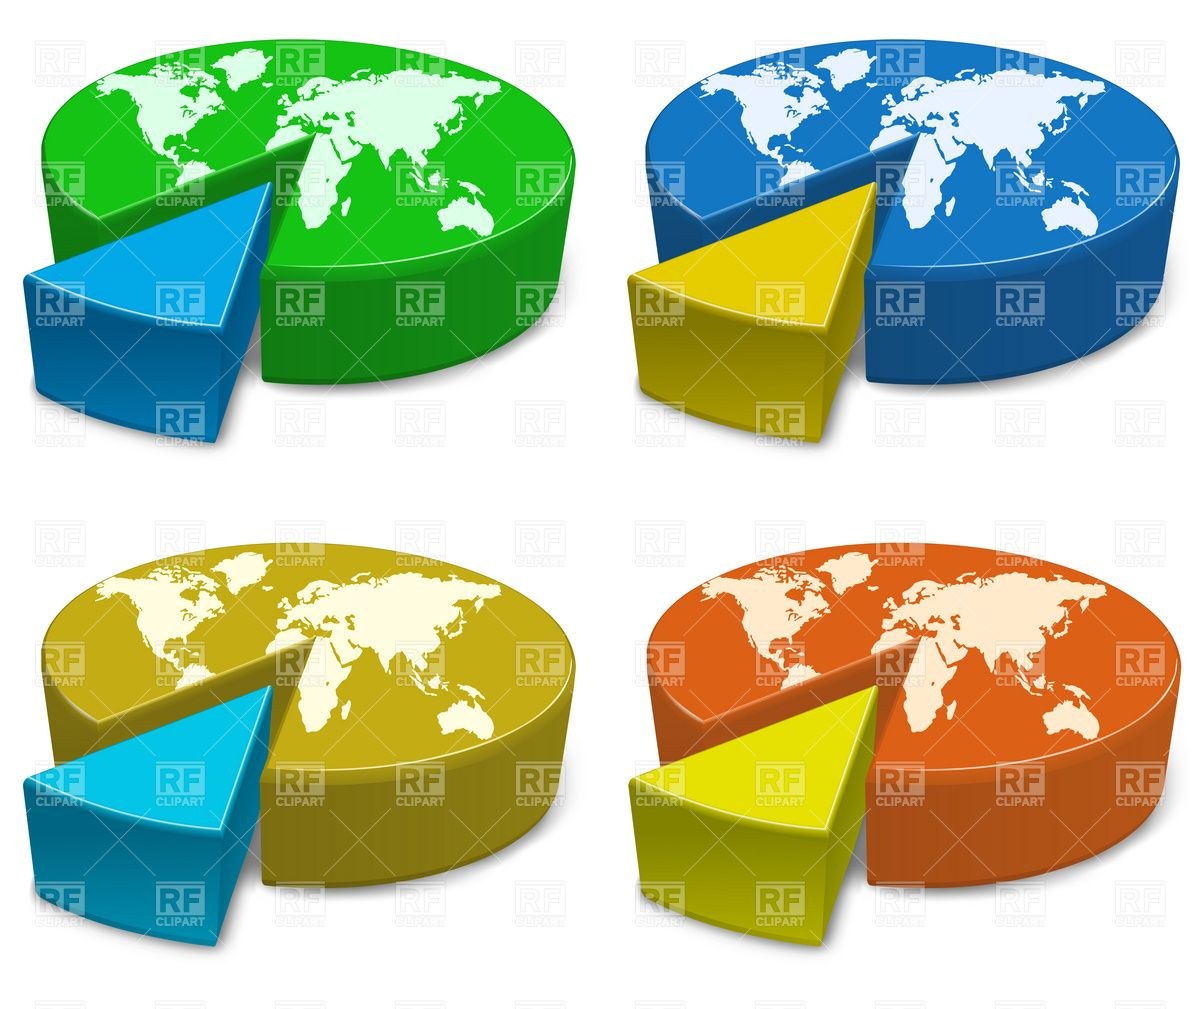 medium resolution of download royalty free pie charts of the globe with the world divided into two parts